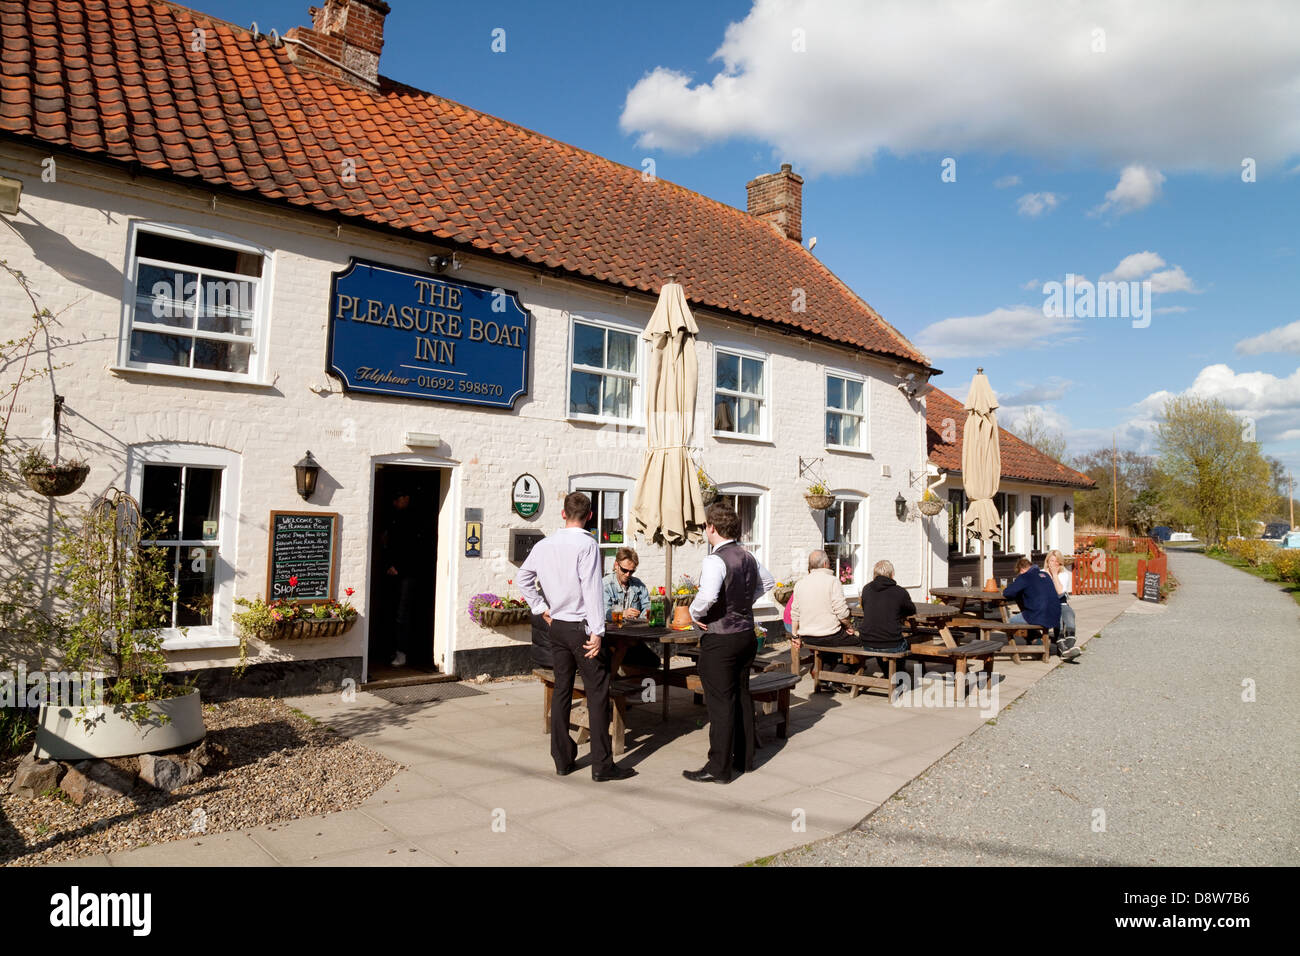 Norfolk Broads pubs inns - The Pleasure Boat Inn, Hickling Broad,  Norfolk, East Anglia, UK - Stock Image